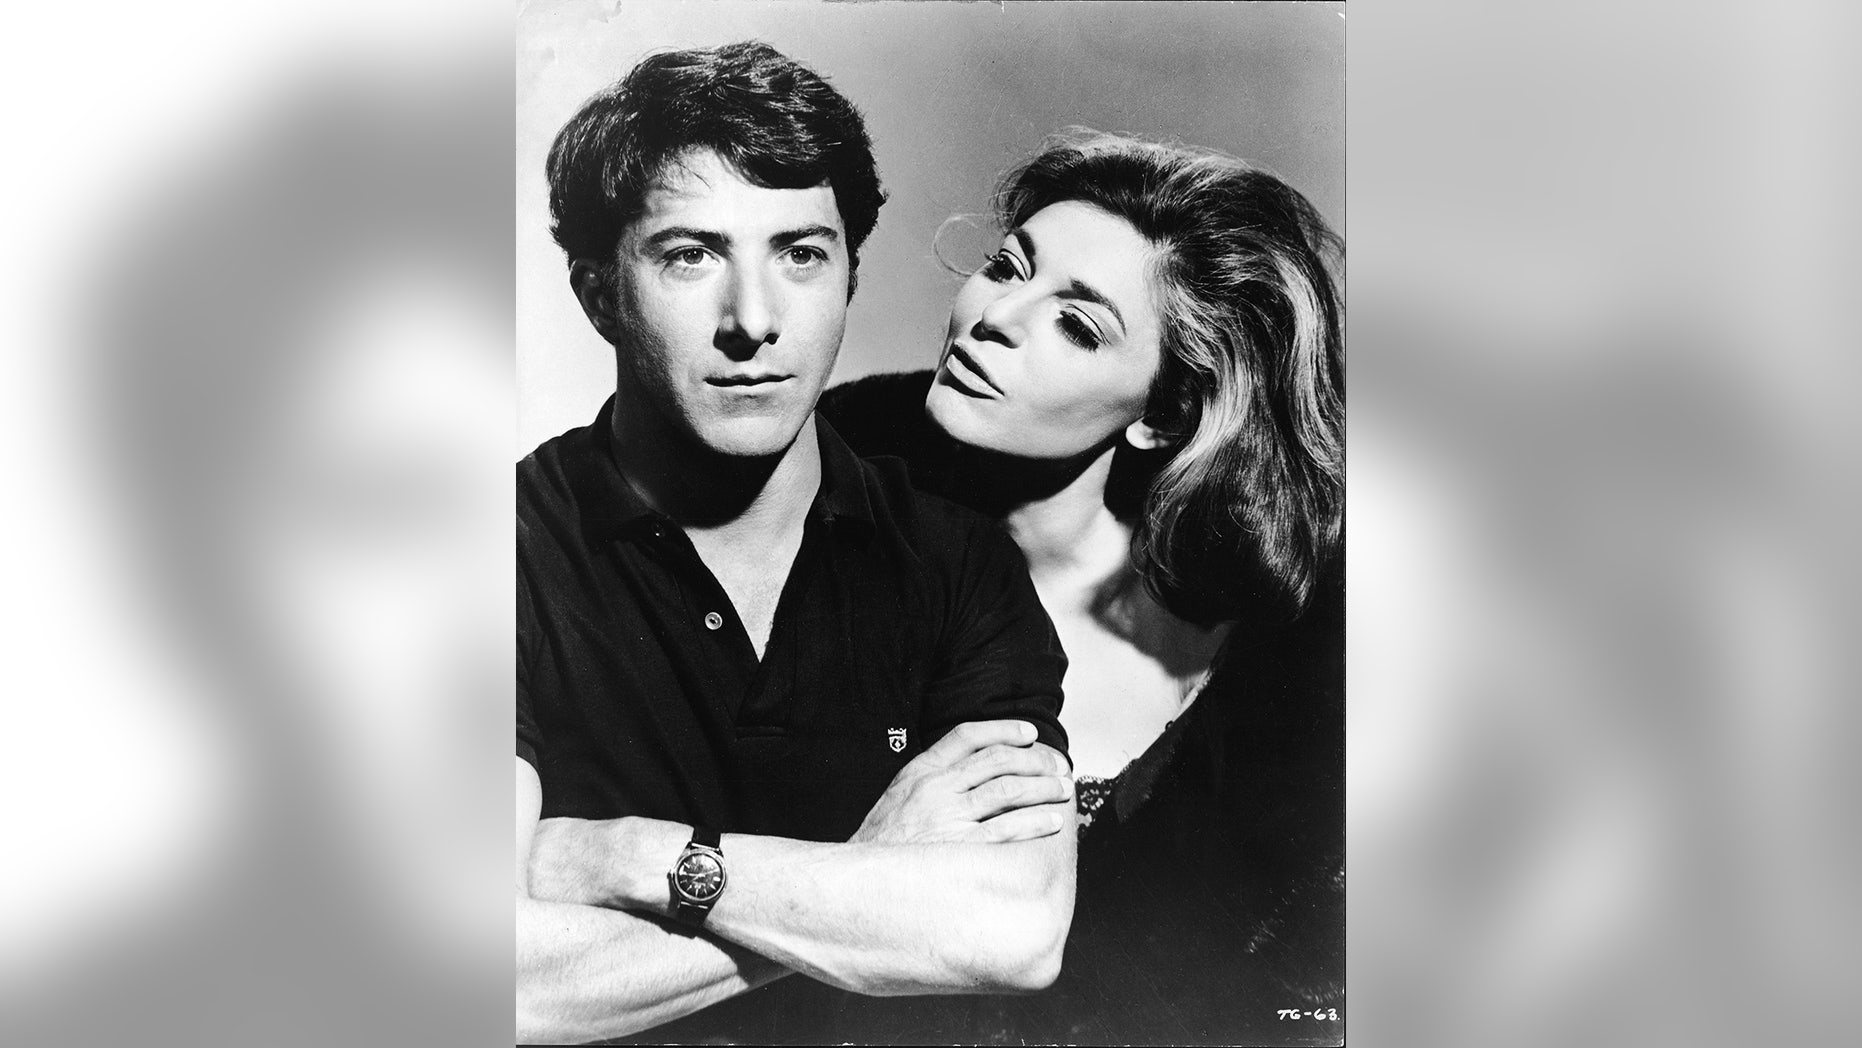 """American actress Anne Bancroft (1931 - 2005), in character as the seductive older woman Mrs. Robinson, looks at American actor Dustin Hoffman, as Benjamin Braddock, in a publicity still from the film """"The Graduate"""" directed by Mike Nichols, California, 1967."""